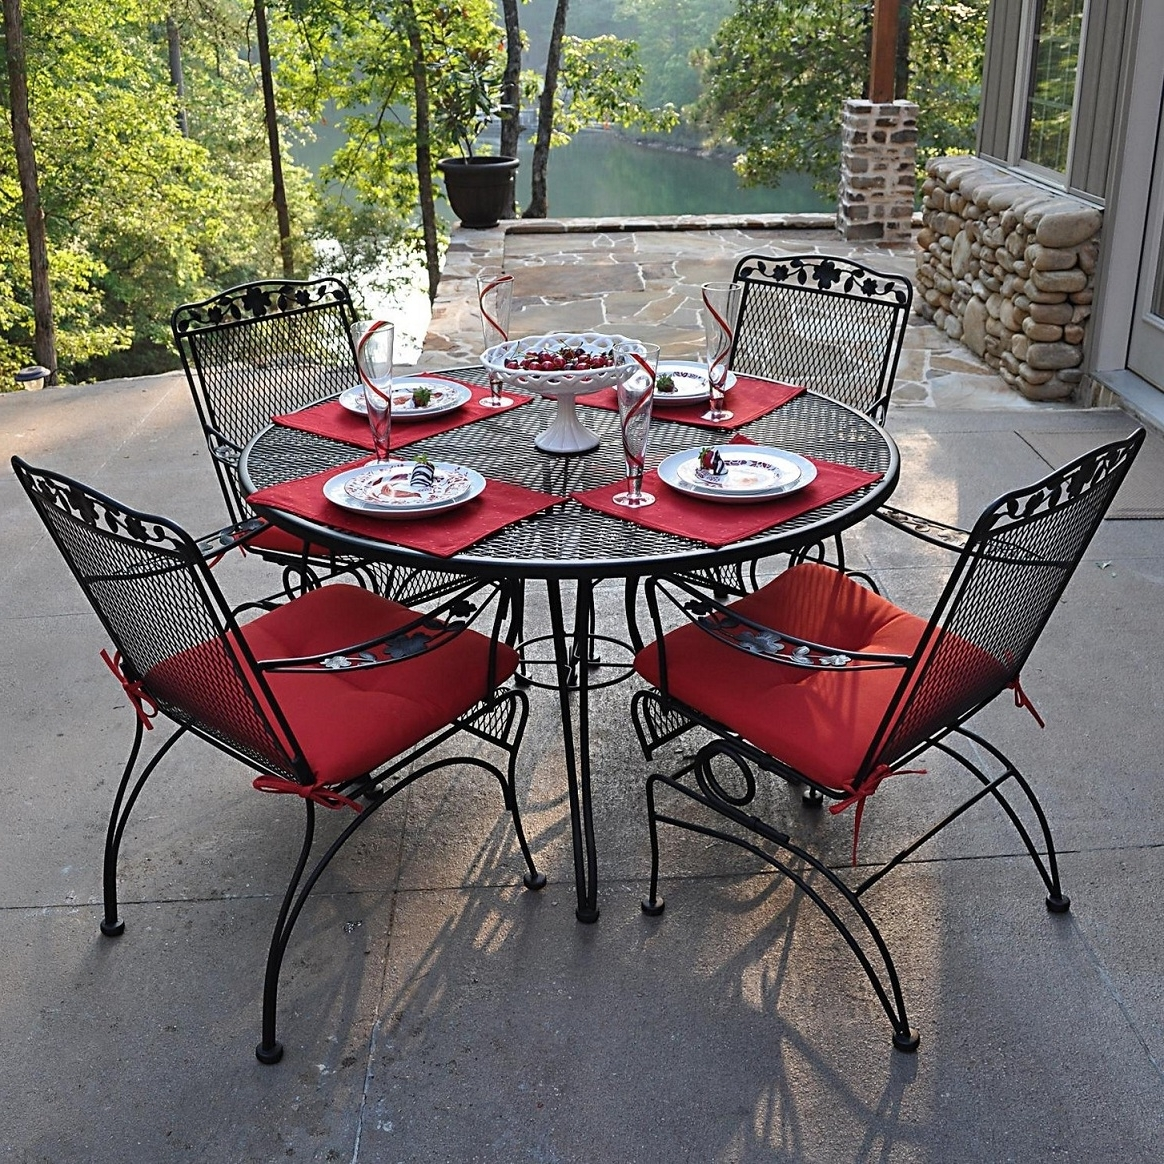 Iron Patio Conversation Sets With Fashionable Patio : Awful Metal Patio Furniture Sets Picture Inspirations (Gallery 11 of 20)